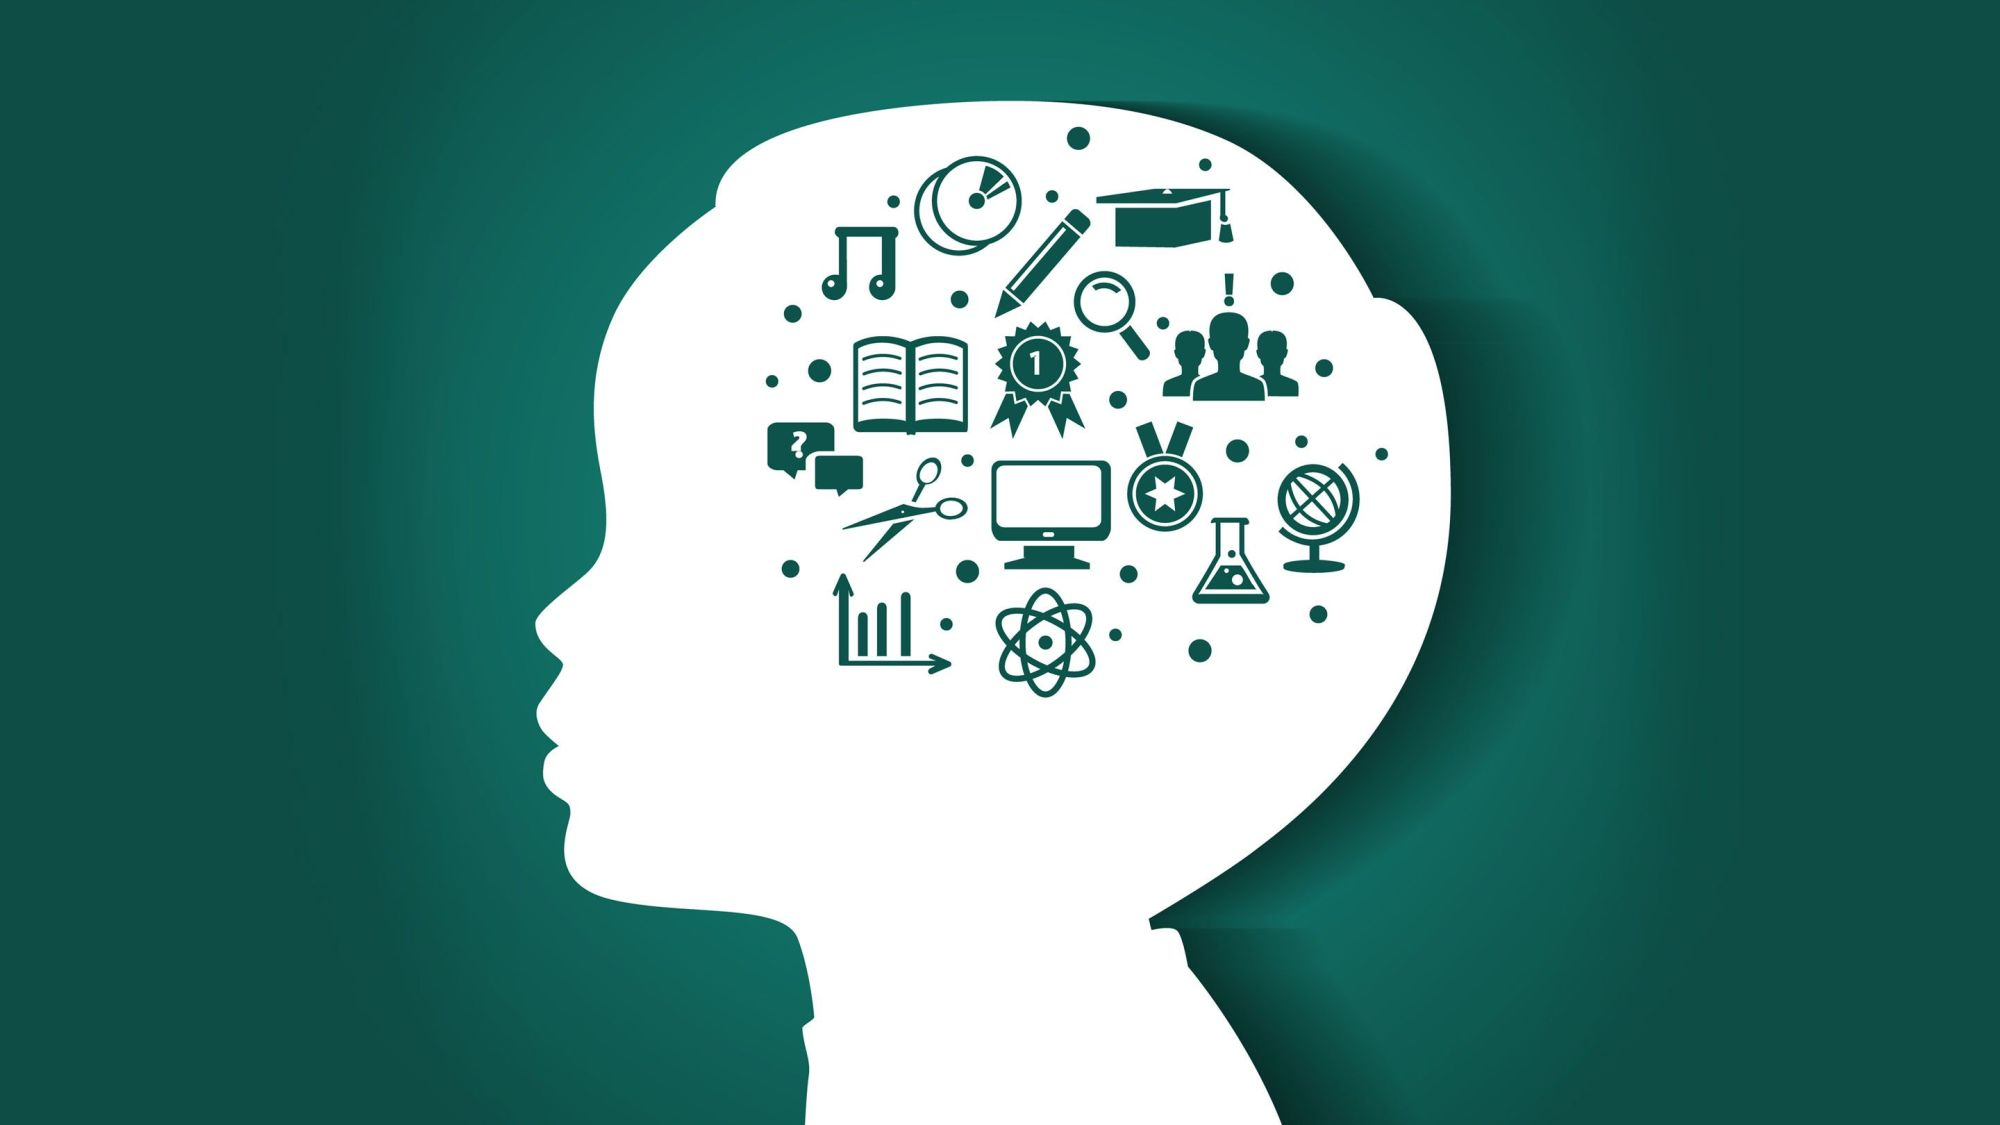 hight resolution of Energy and Calm: Brain Breaks and Focused-Attention Practices   Edutopia